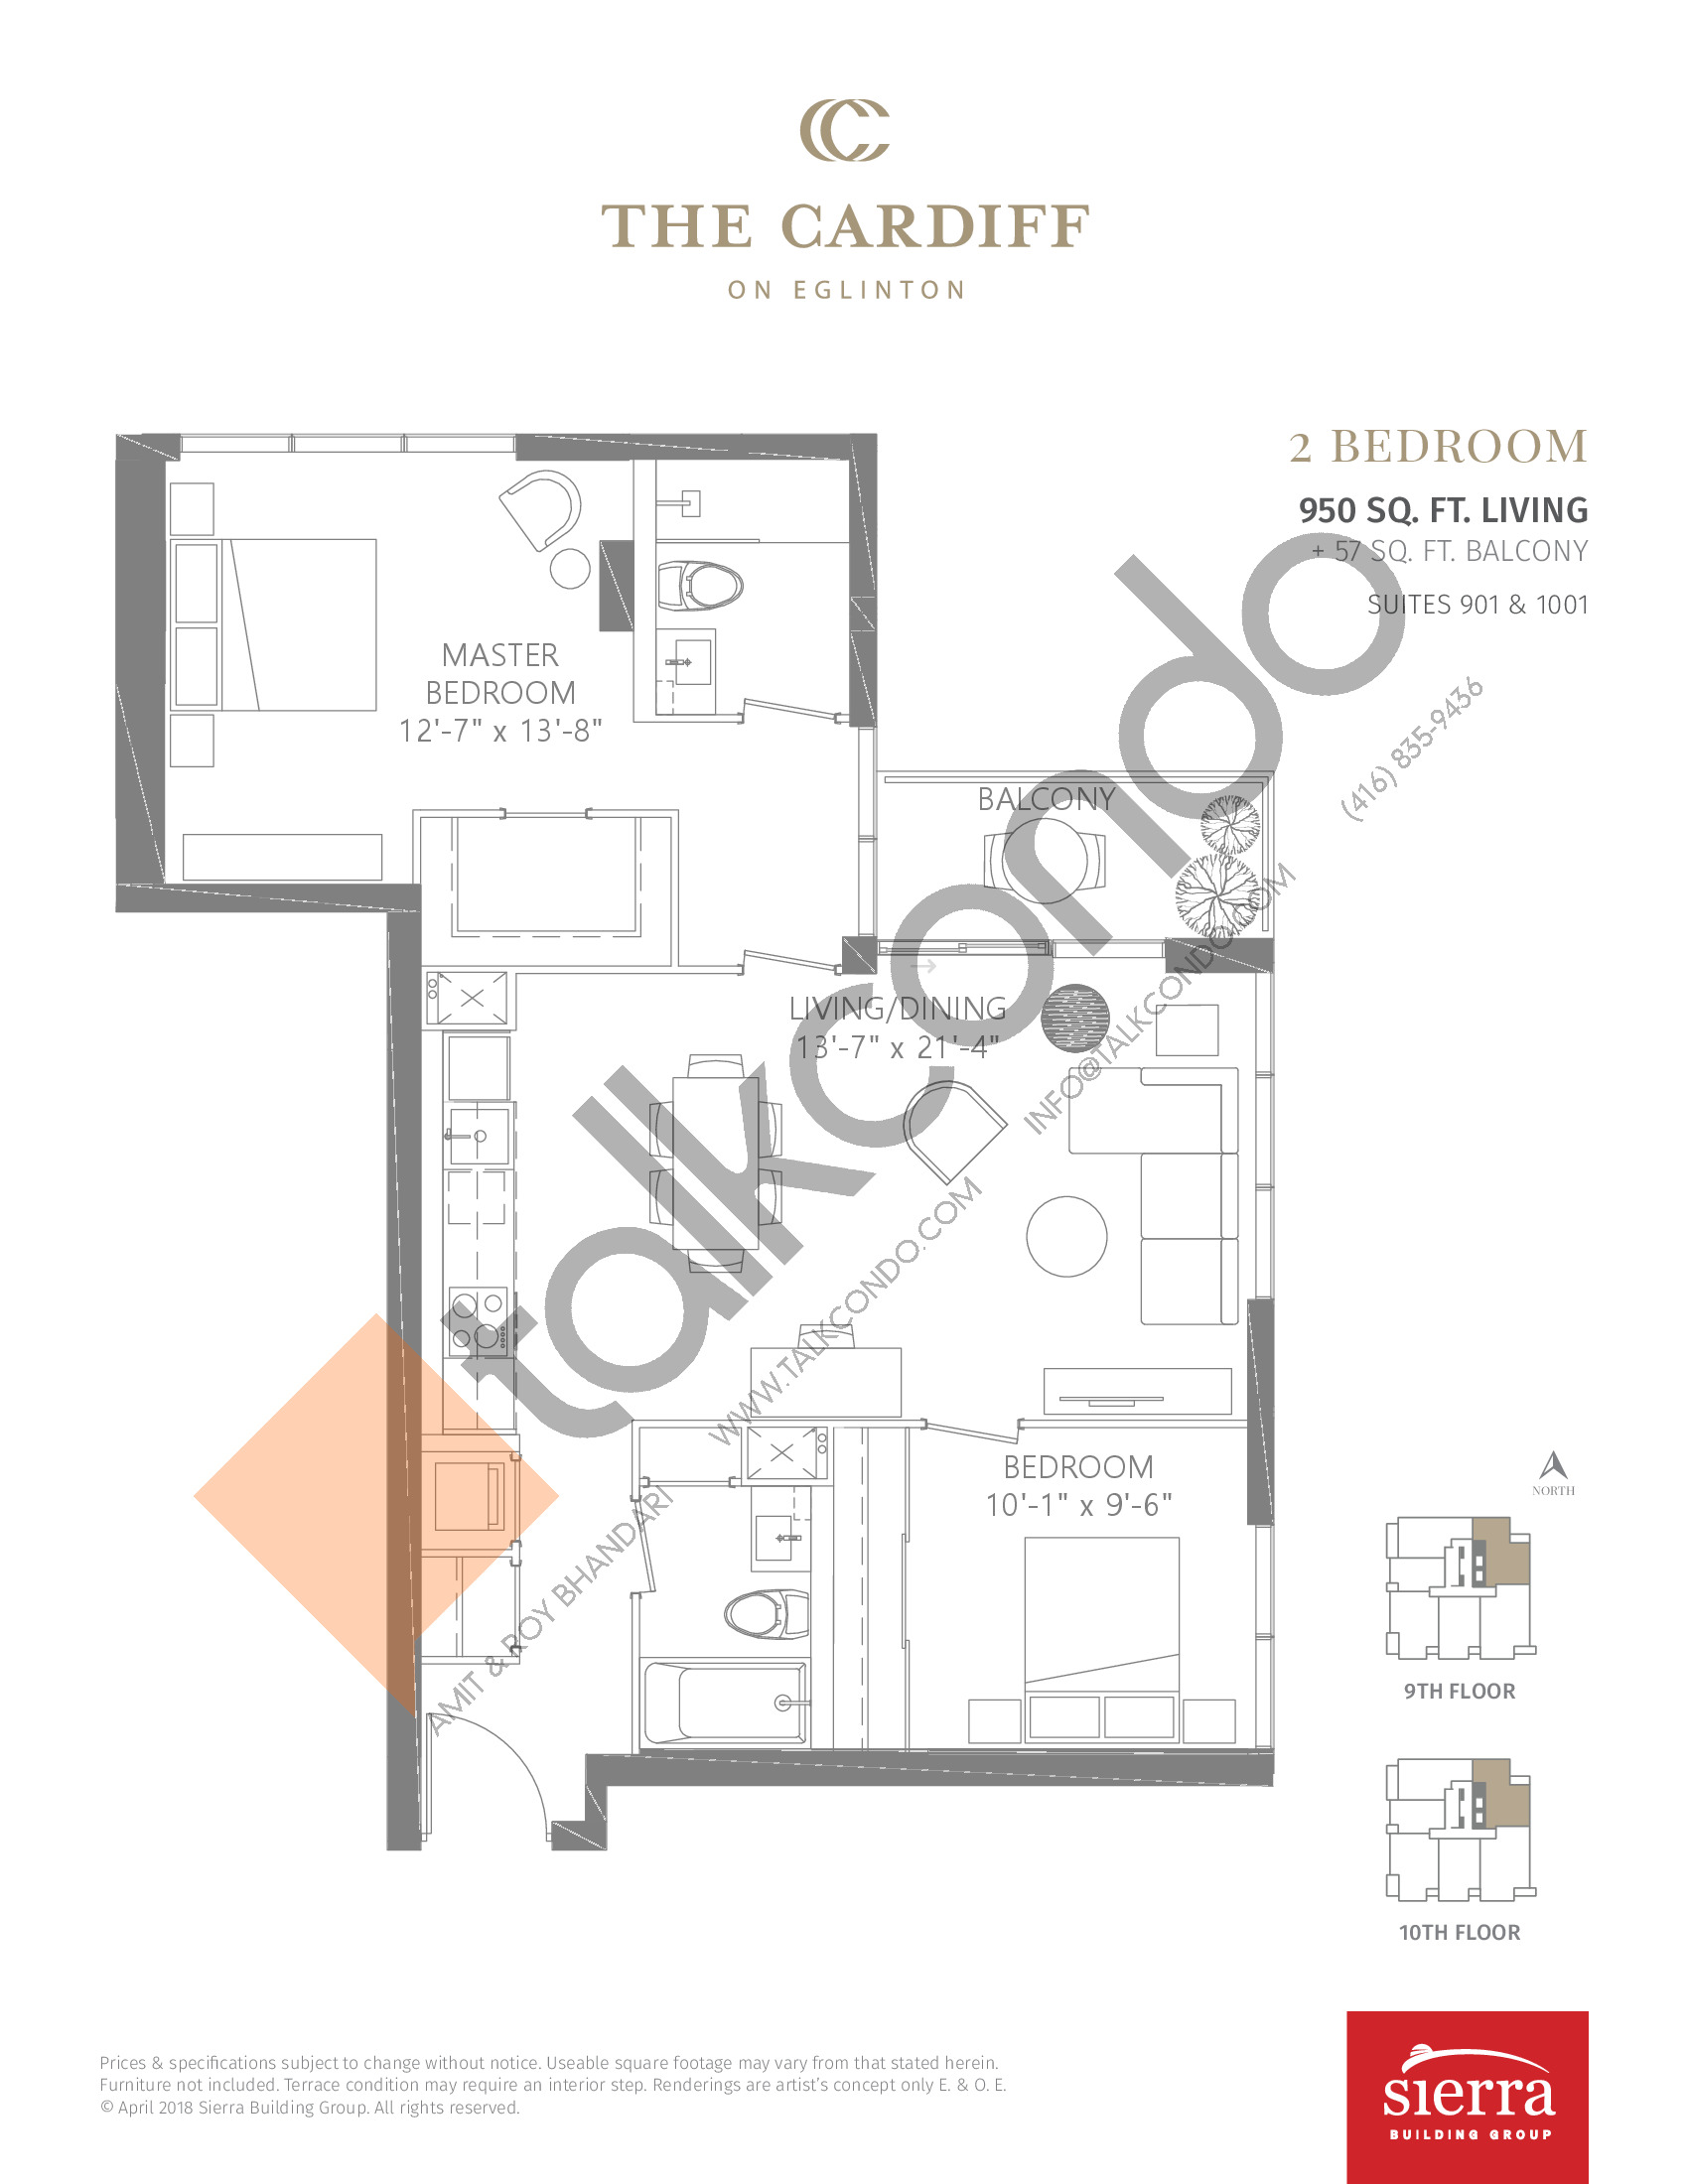 Suites 901 & 1001 Floor Plan at The Cardiff Condos on Eglinton - 950 sq.ft